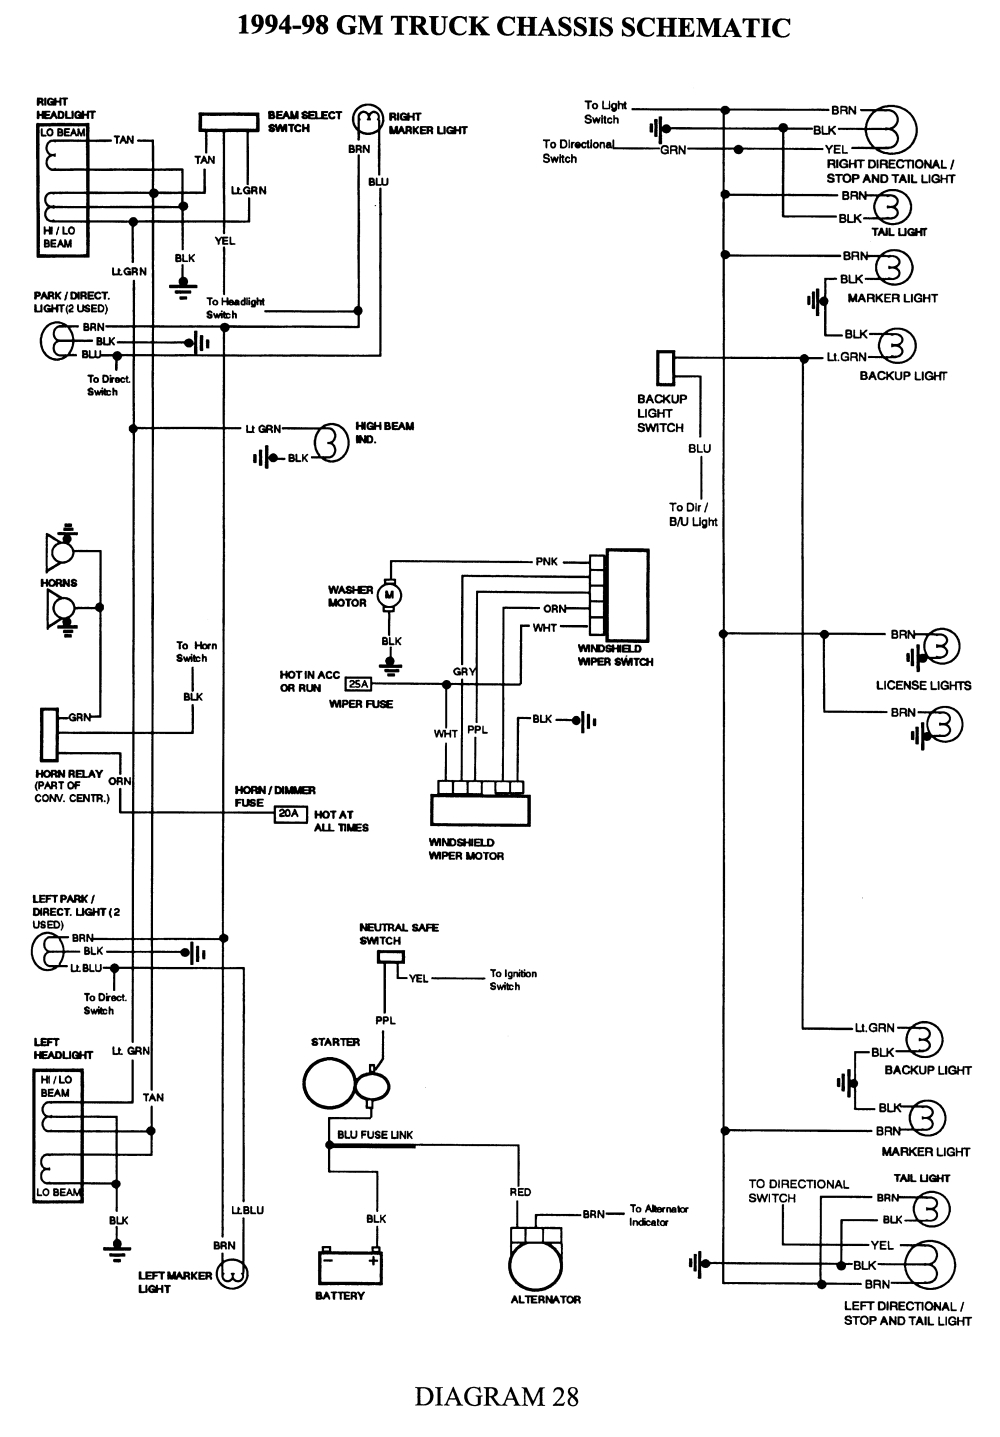 medium resolution of 1984 gmc wiring diagram wiring diagram repair guideswiring diagrams for a 1984 gmc 1500 21